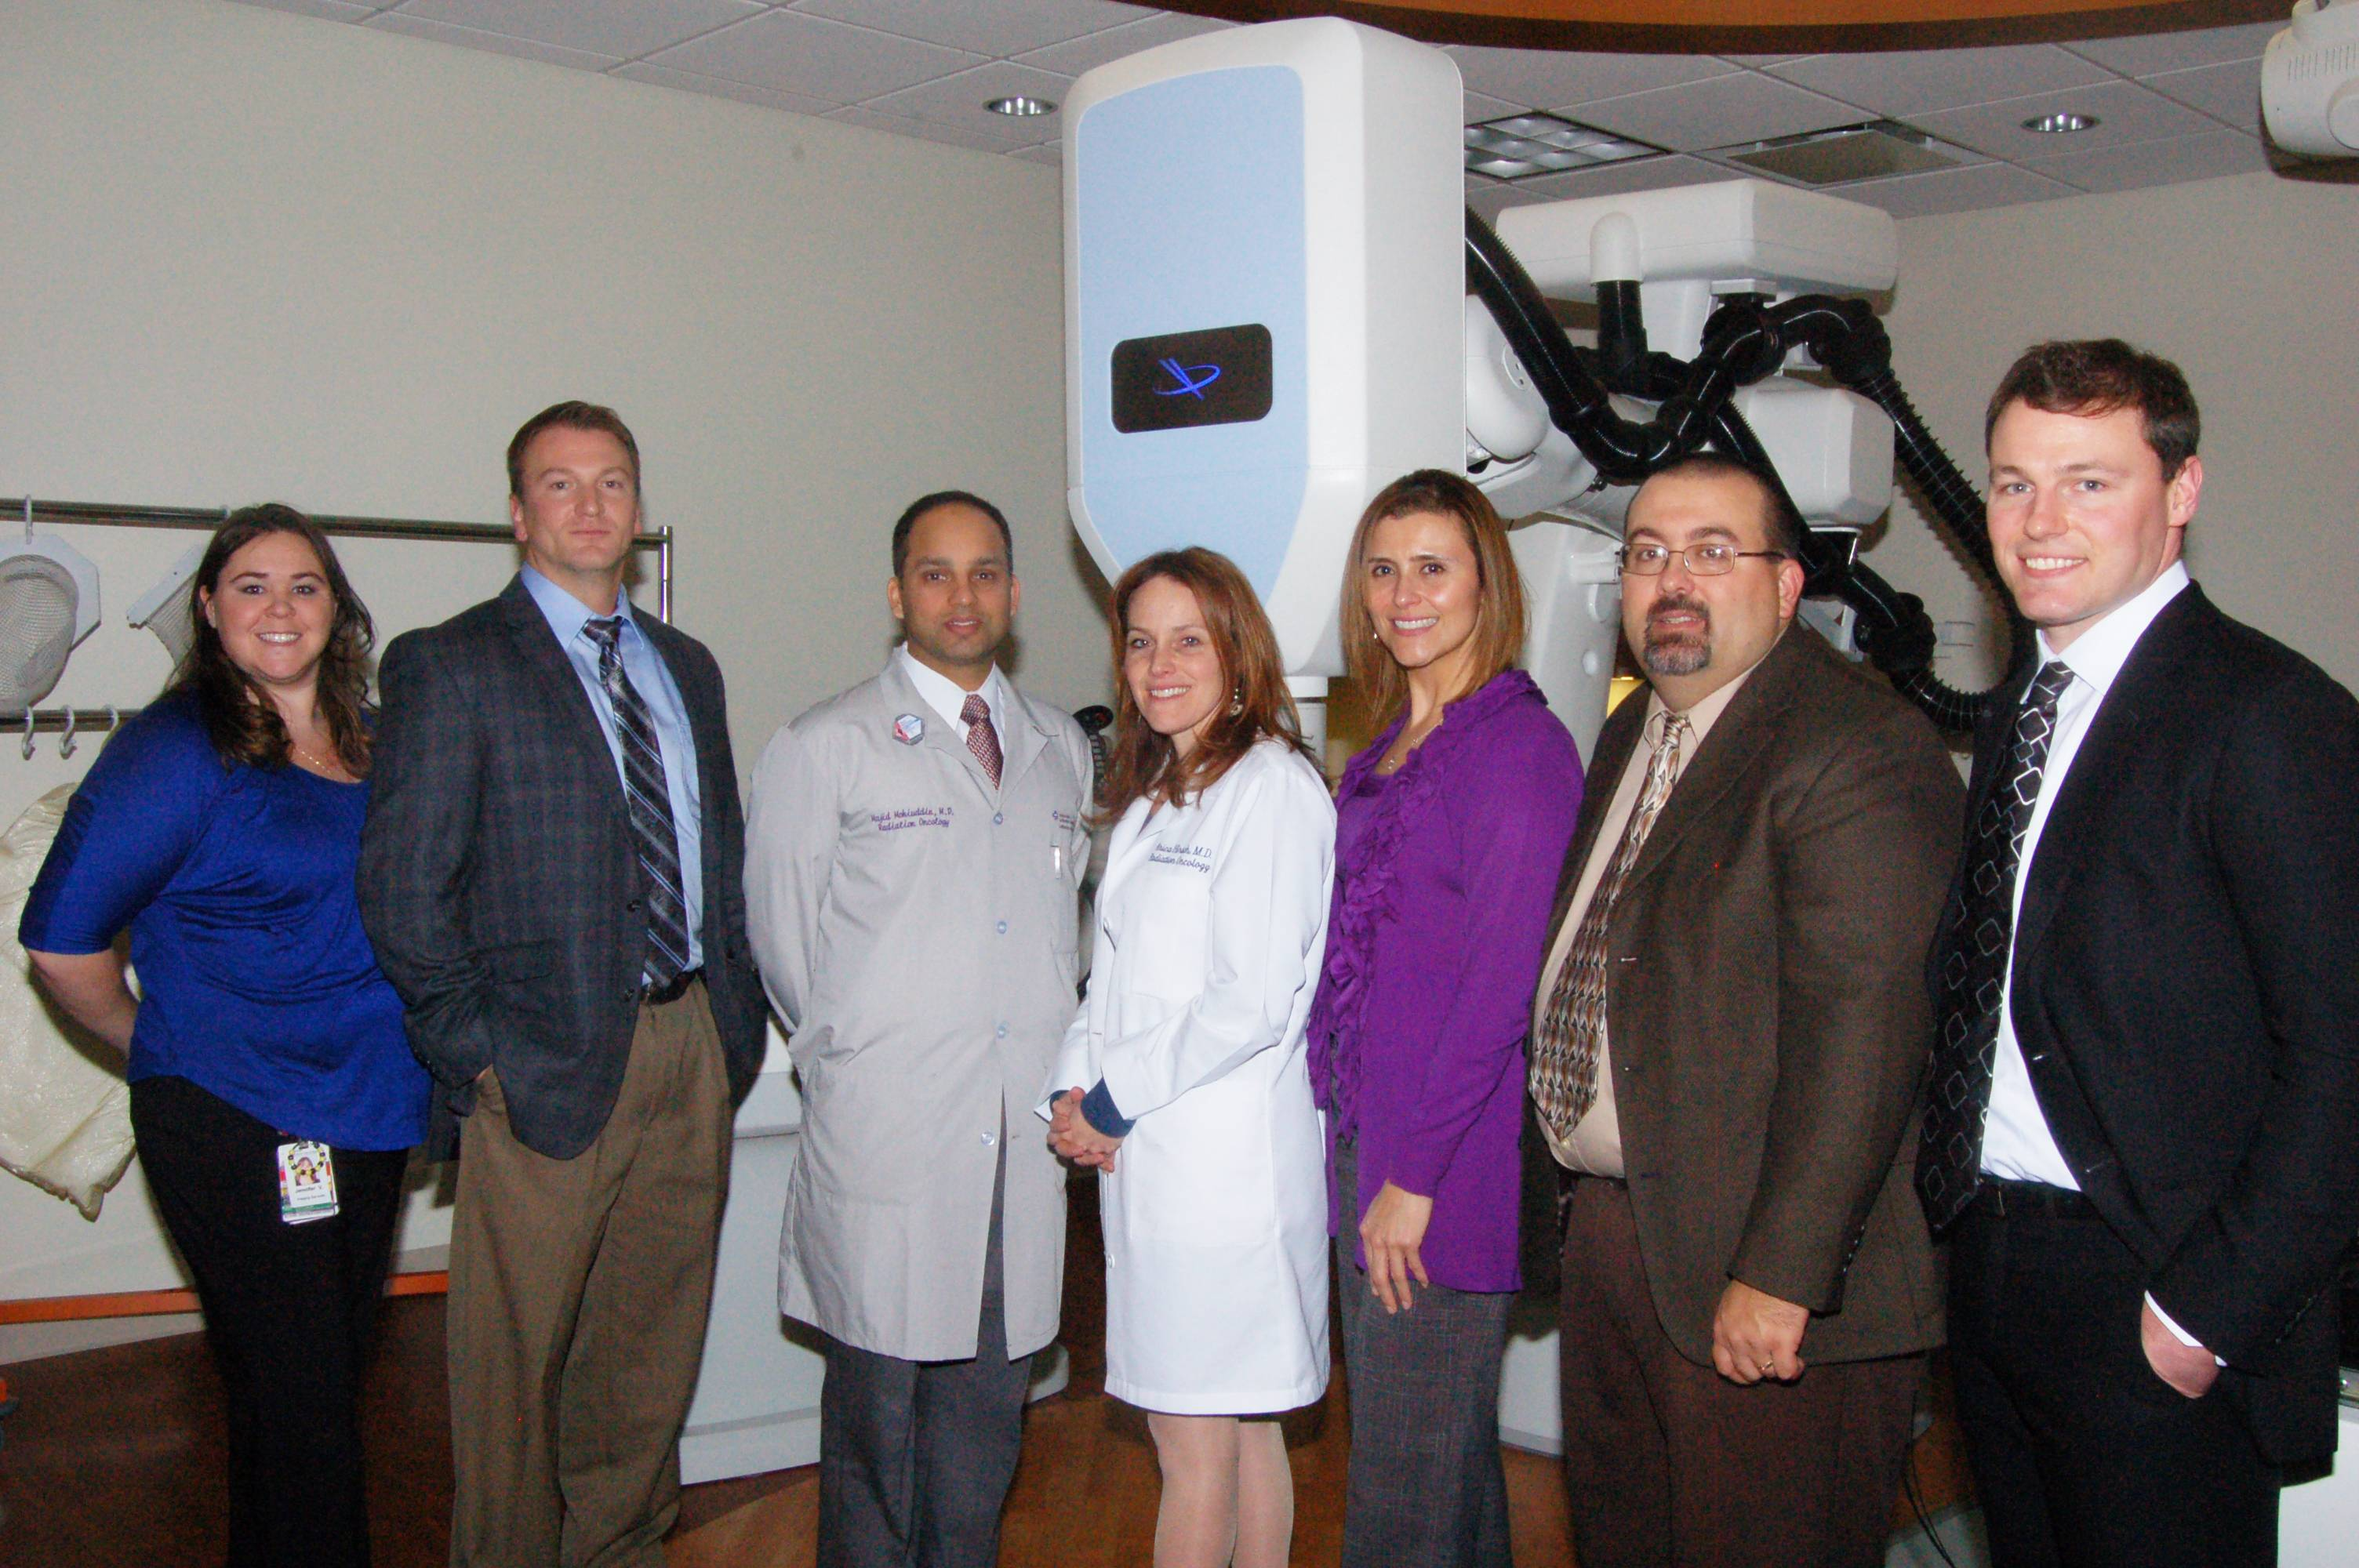 The Illinois CyberKnife team